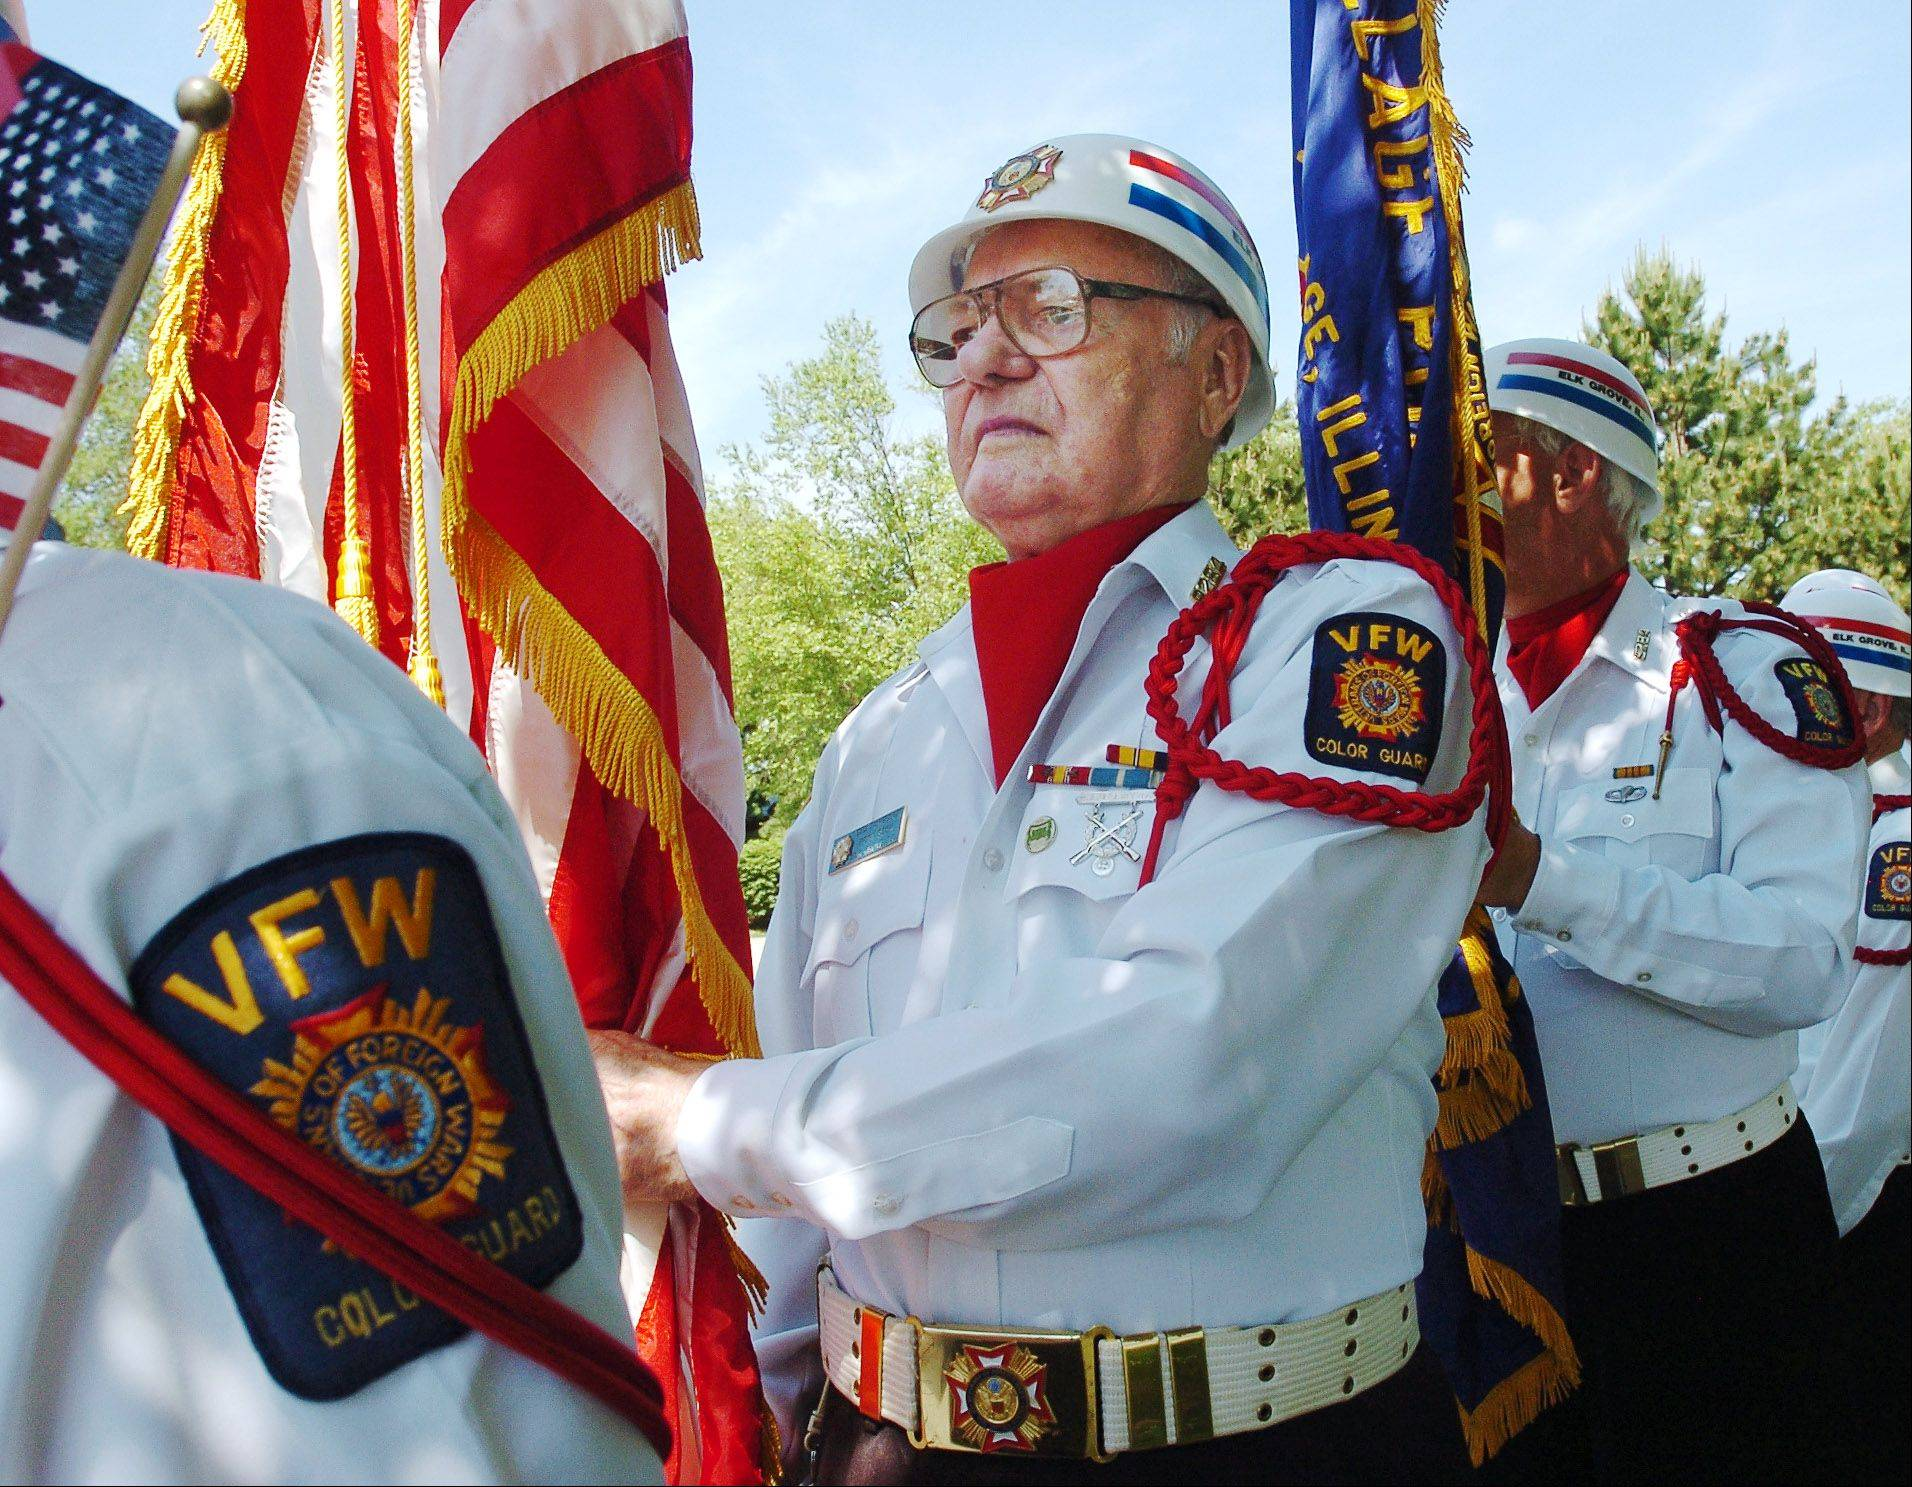 In 2006, Ted Torgesen, a Korean War veteran, carries the American flag at an Elk Grove Village Memorial Day ceremony.